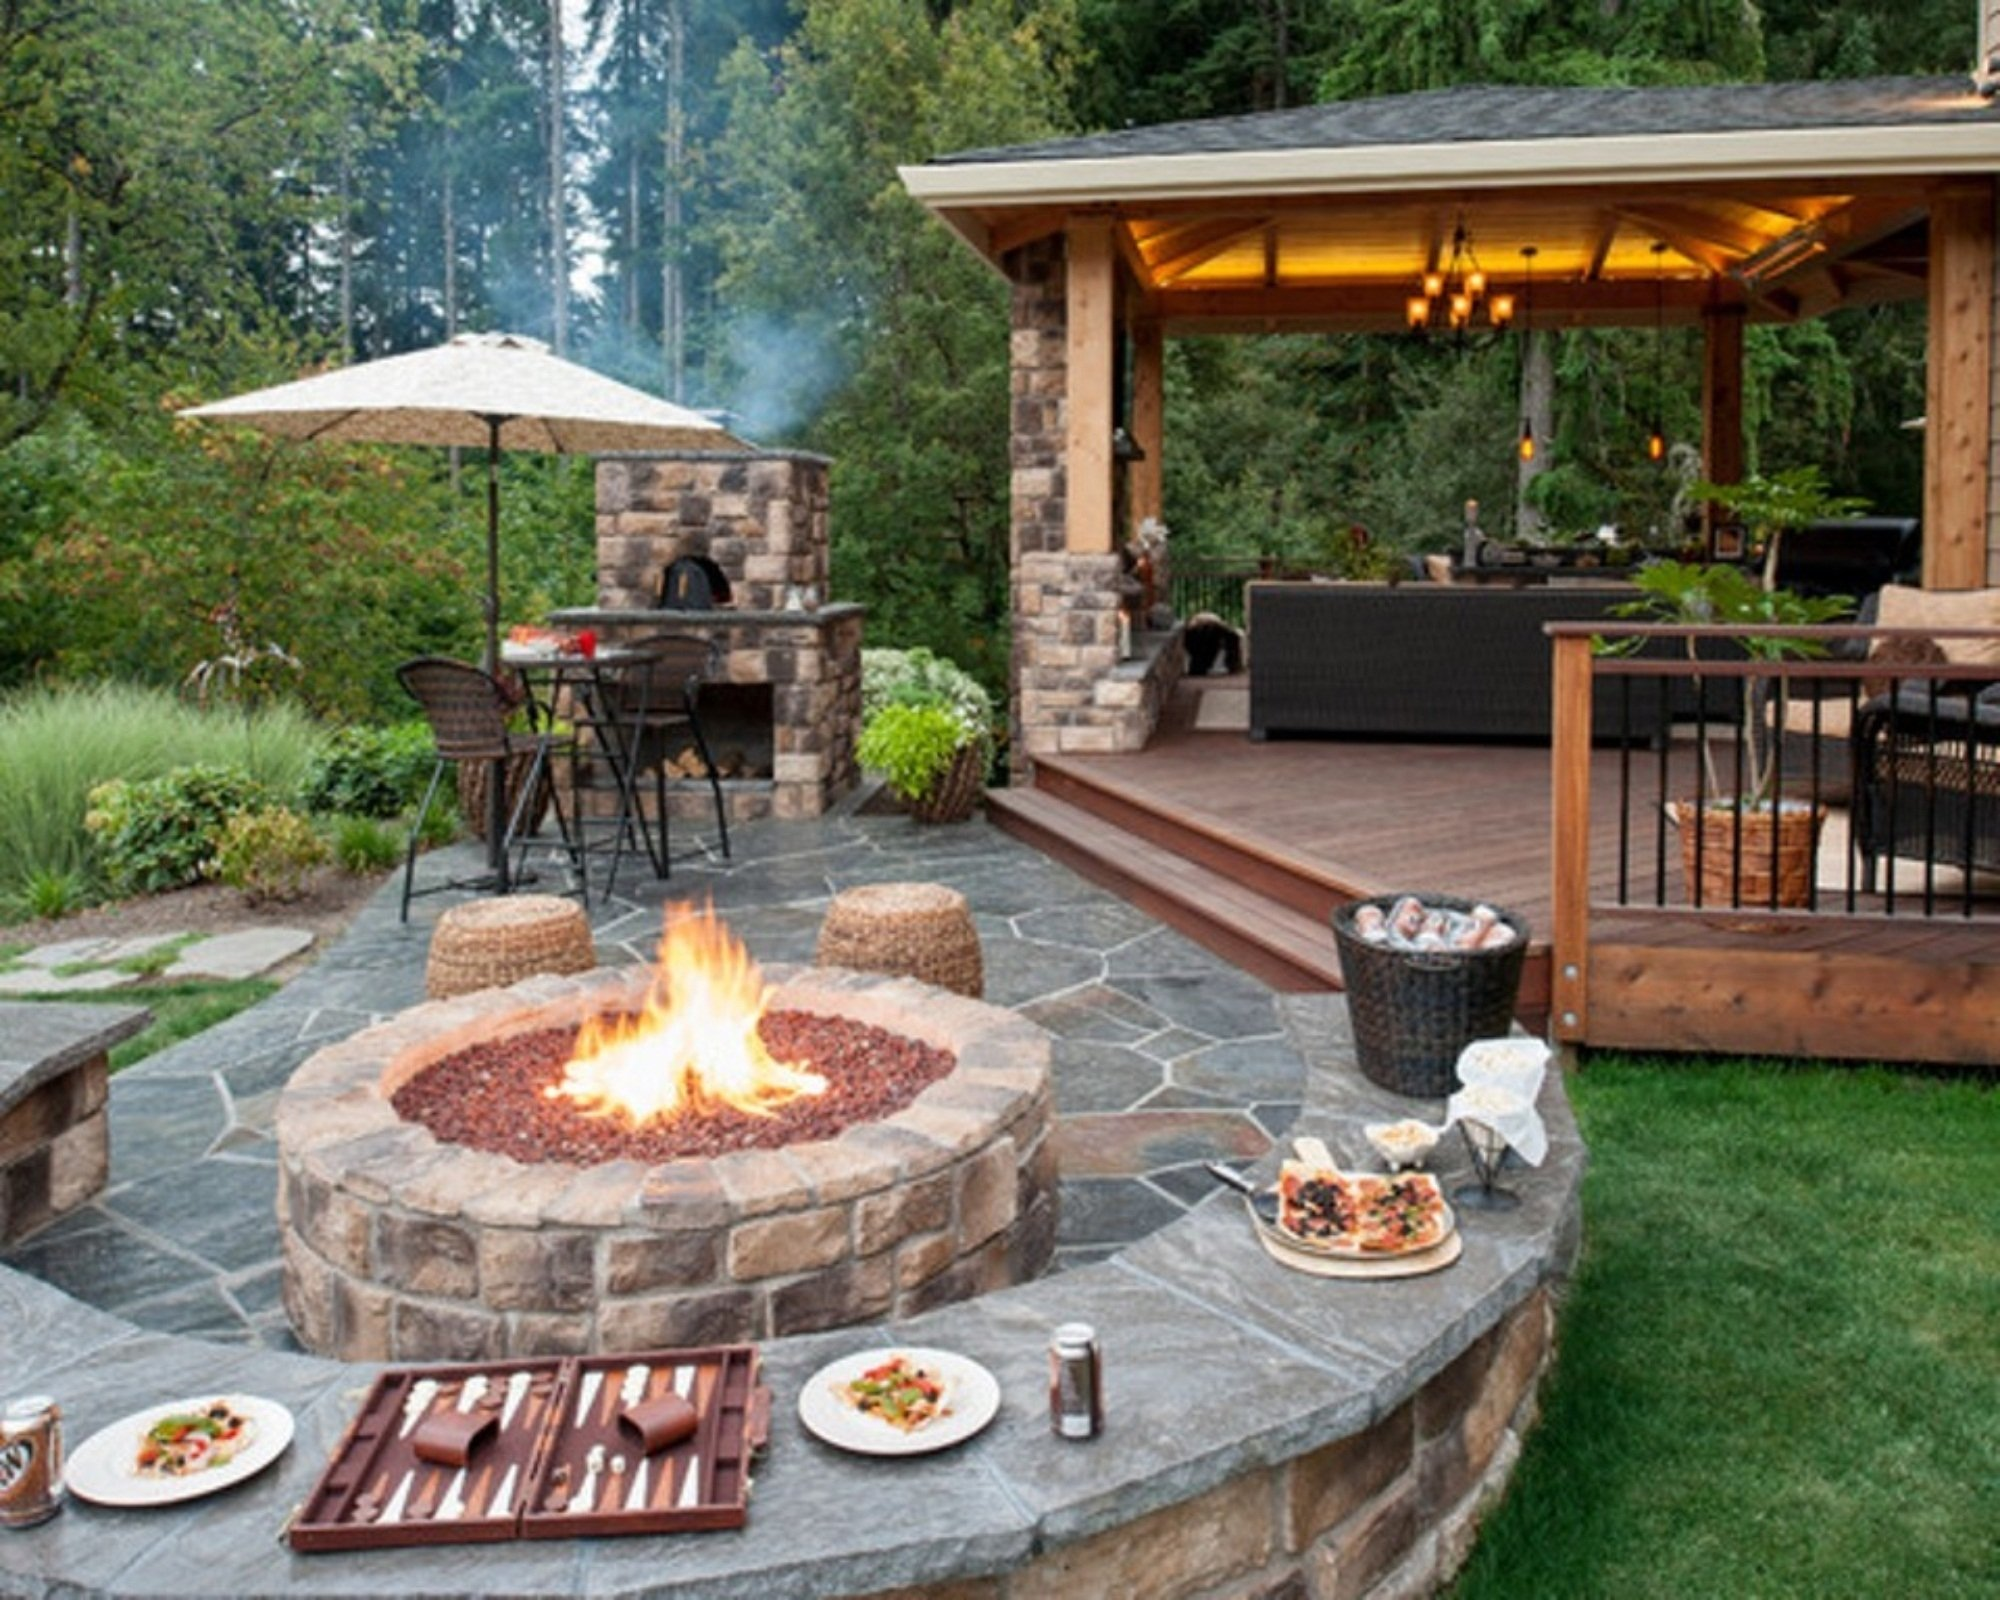 10 Lovely Patio Ideas With Fire Pit round brick fire pit in backyard ideas with stone floor design